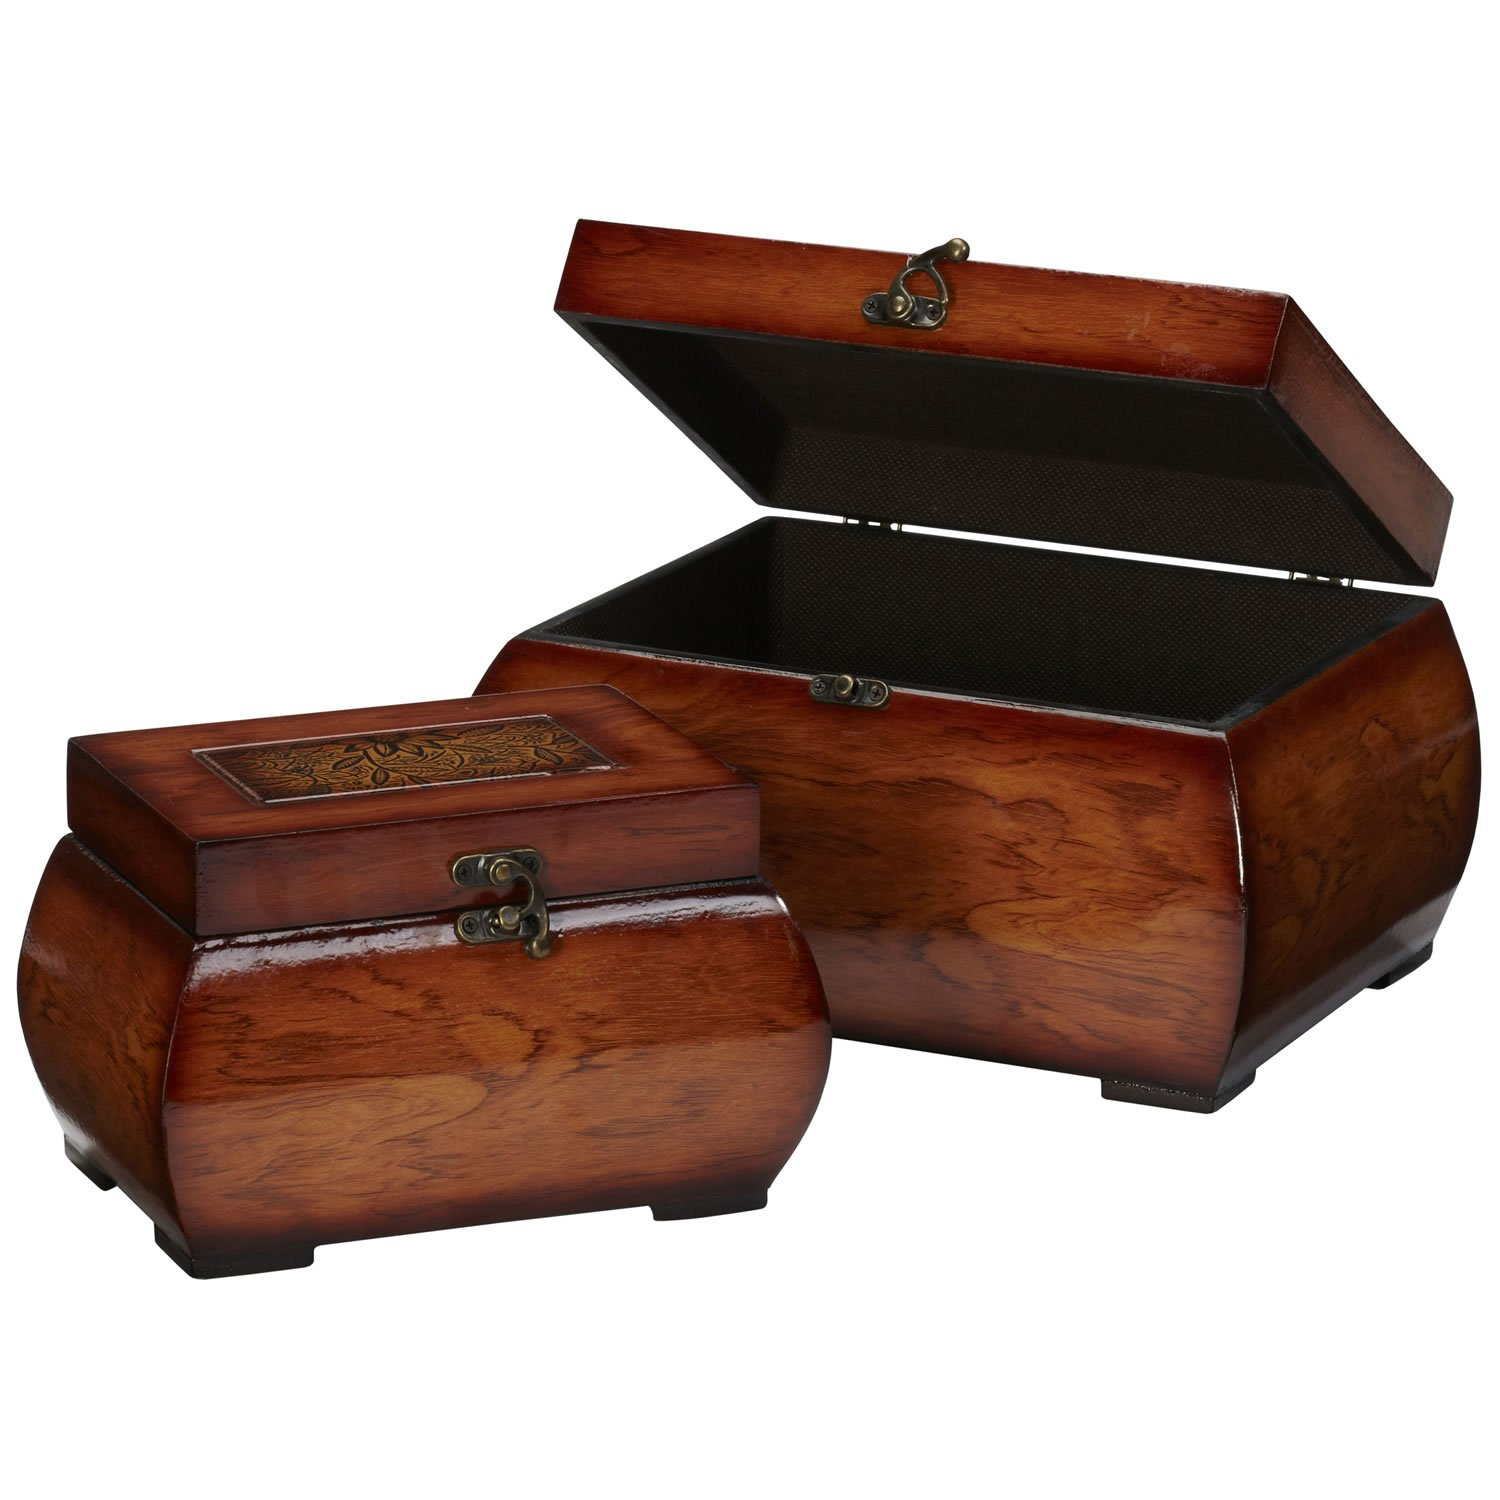 New Decorative Lacquered Wood Chests (Set of 2) NA by Generic (Image #2)